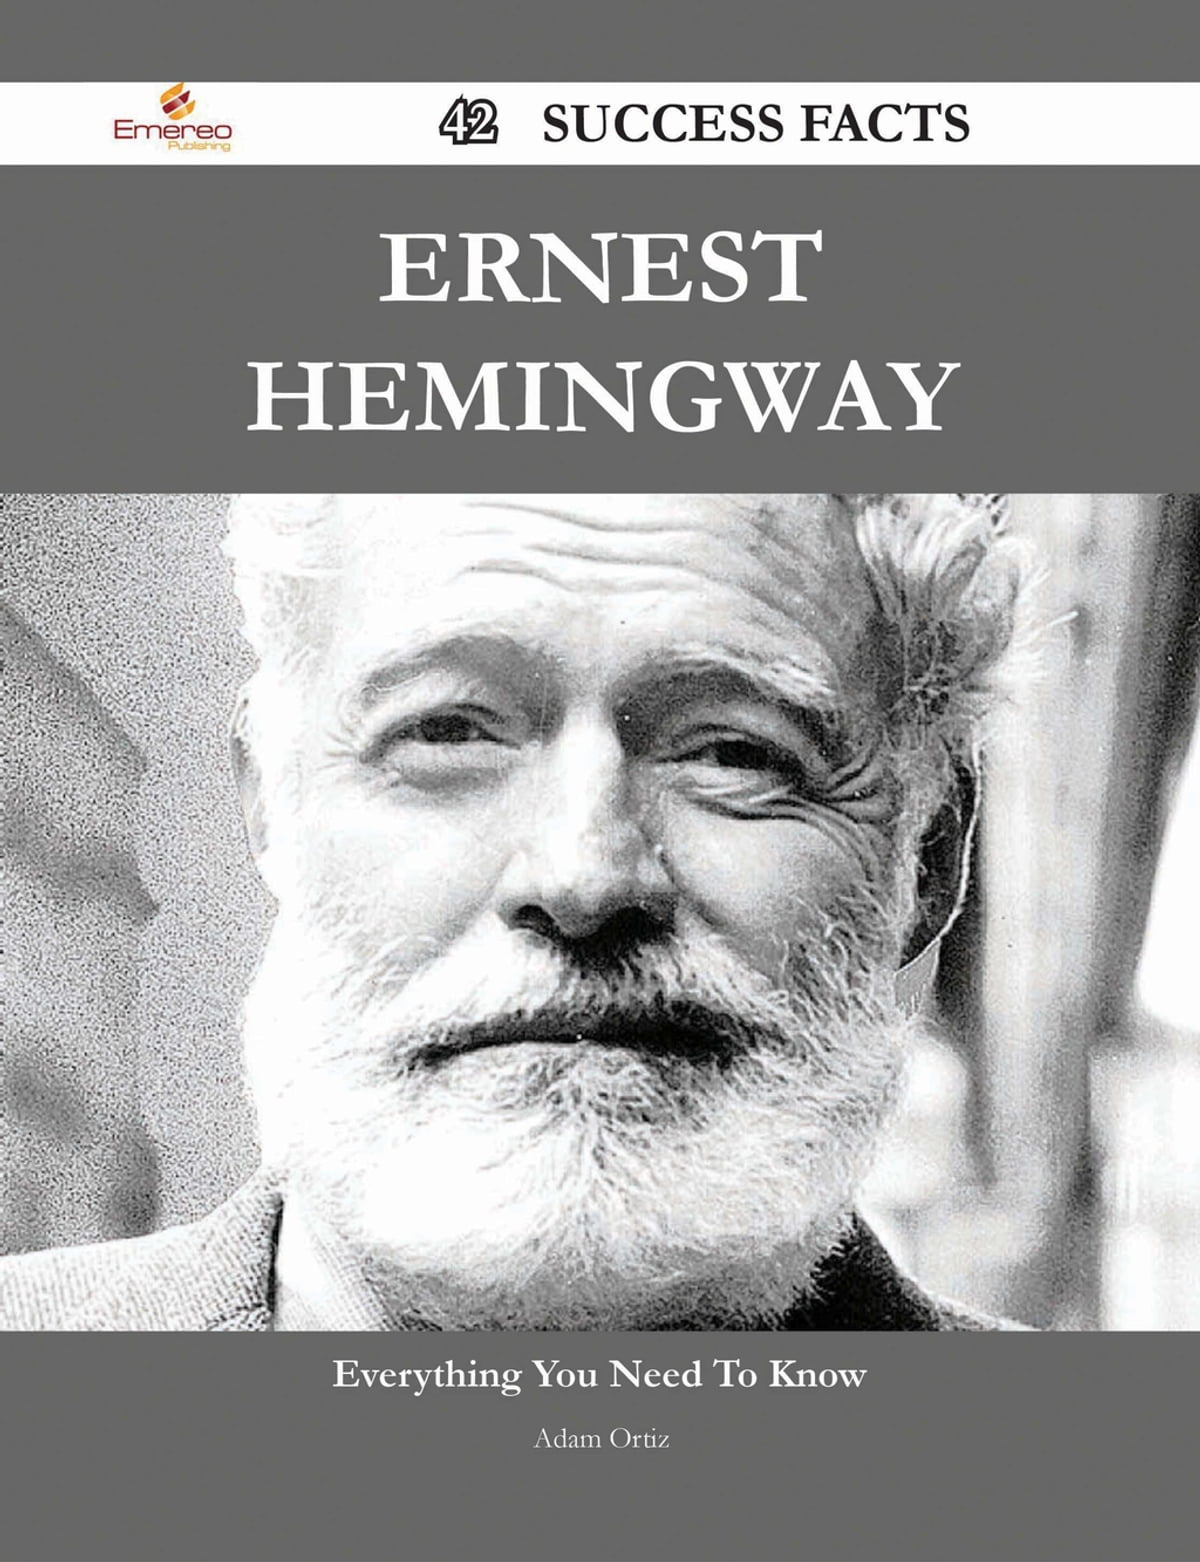 A brief biography of Hemingway. Interesting Facts 49